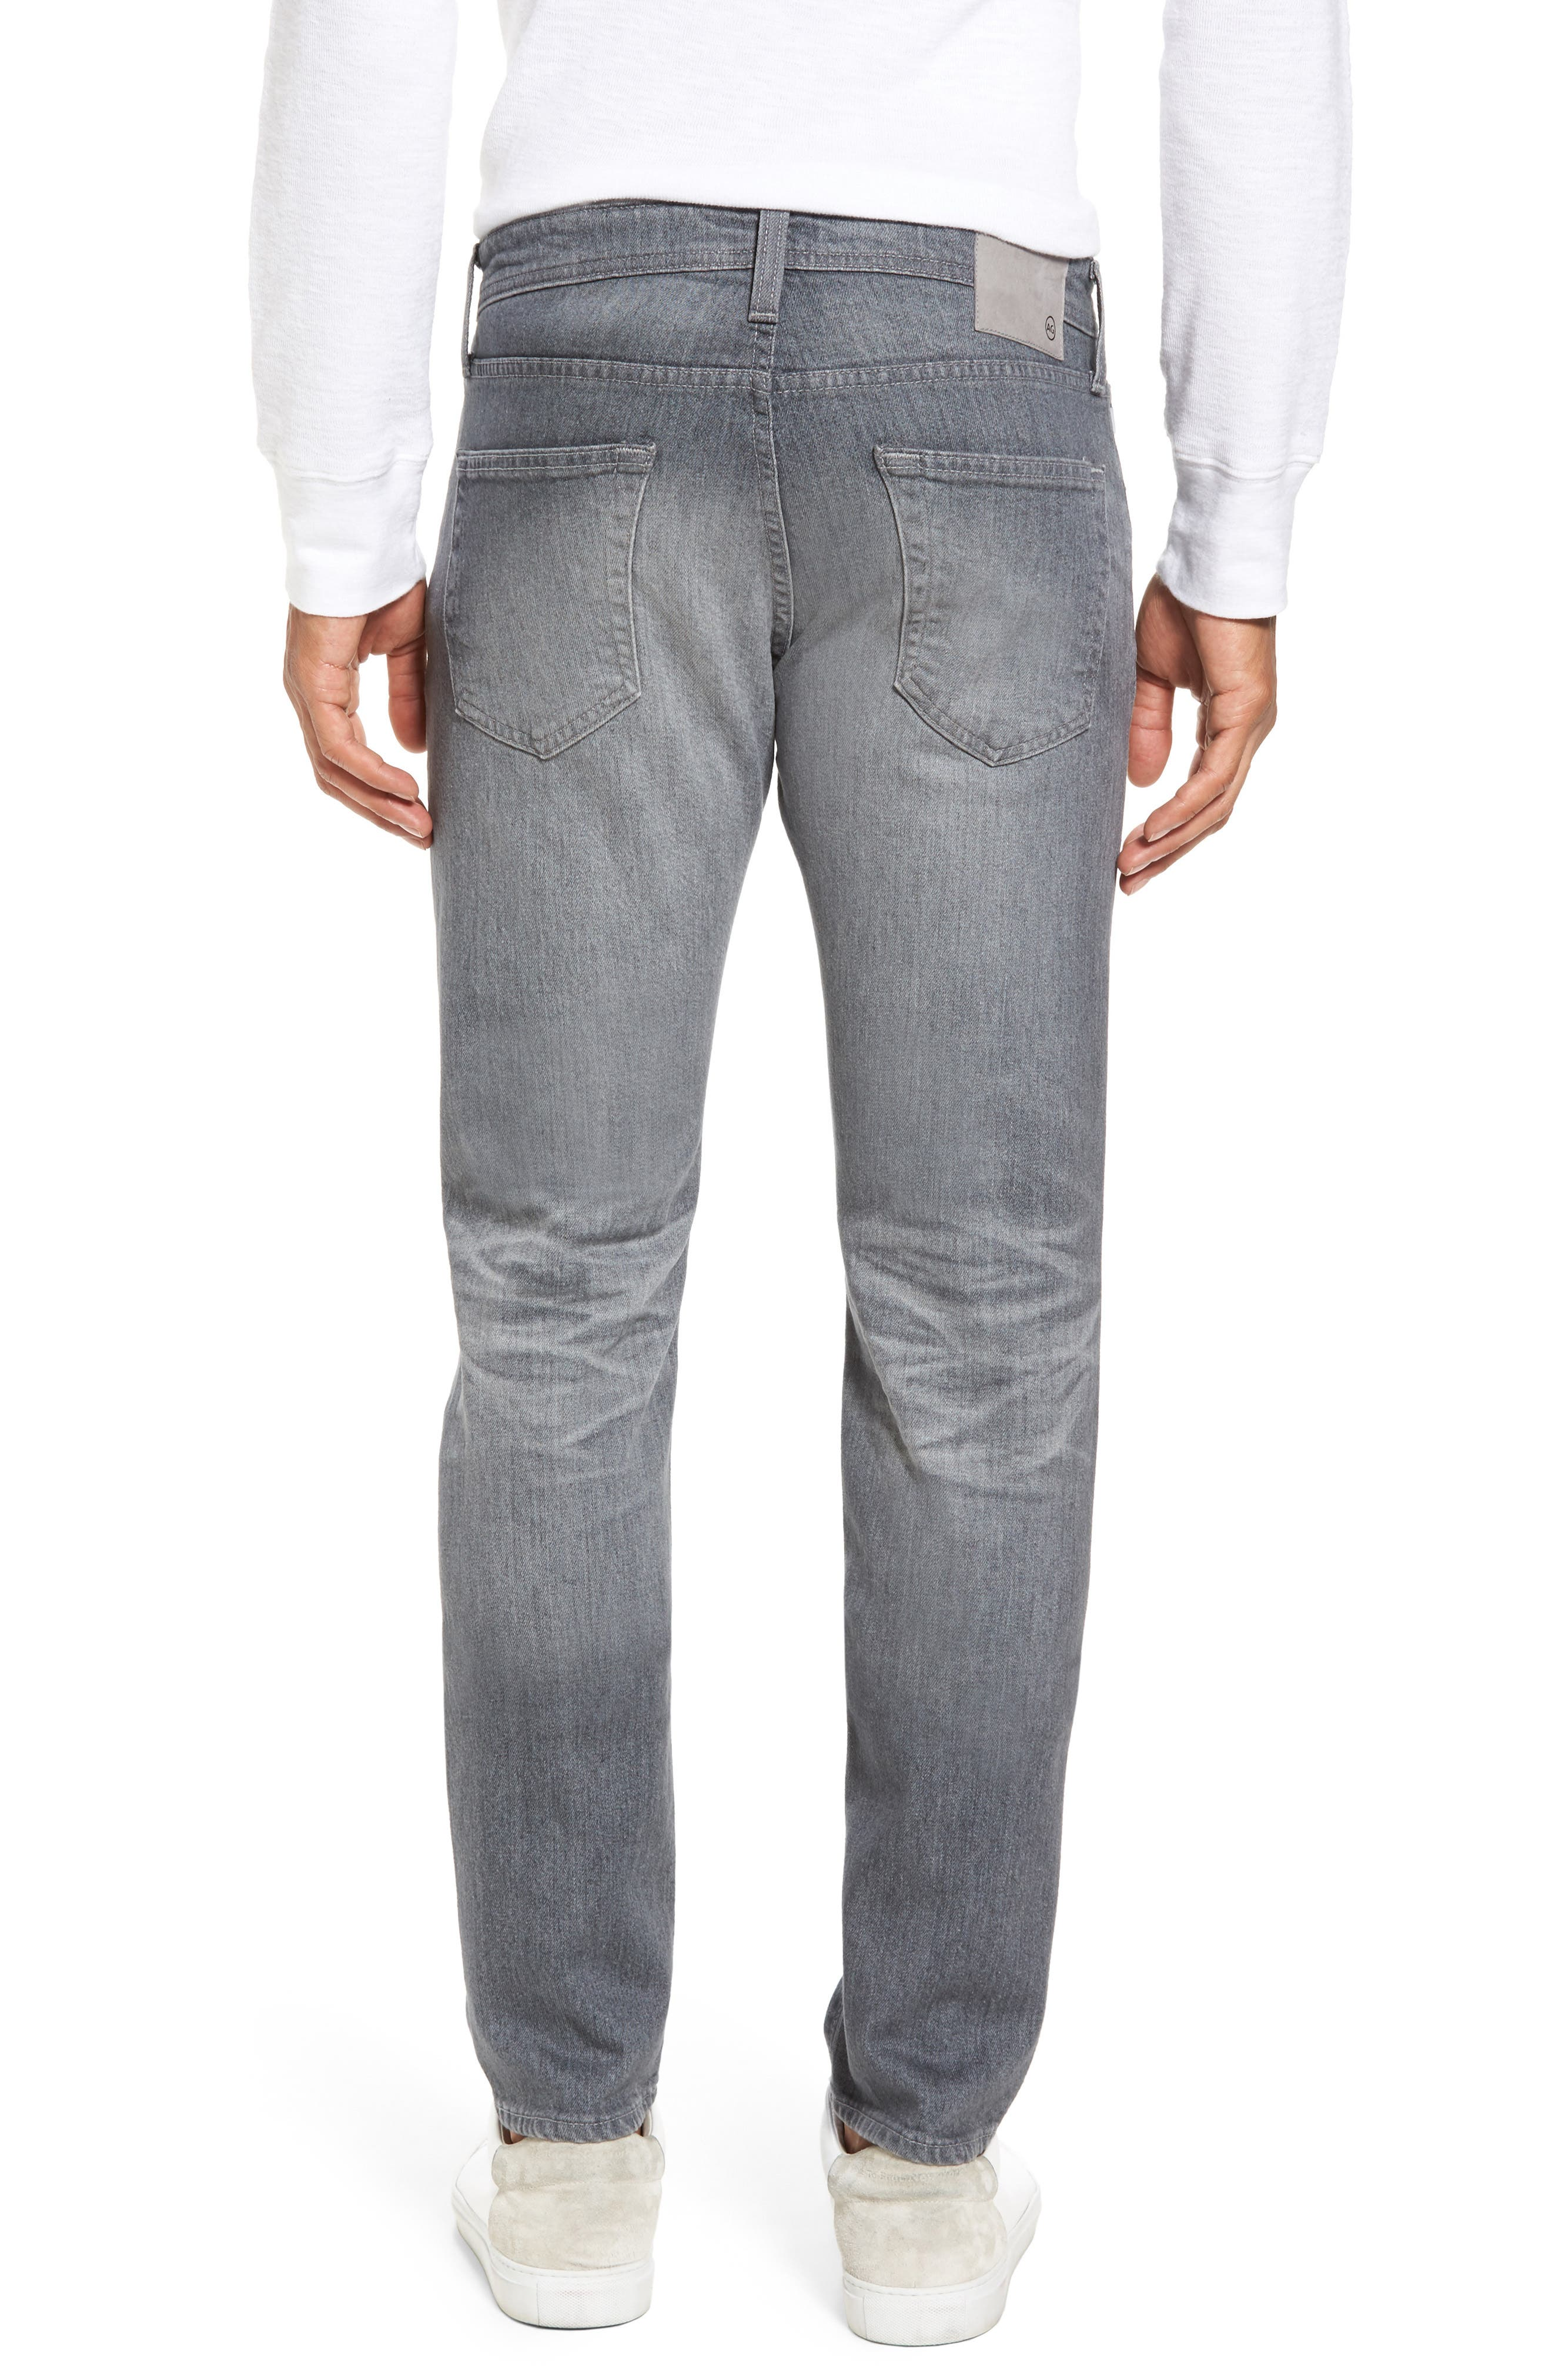 Tellis Modern Slim Fit Jeans,                             Alternate thumbnail 2, color,                             13 Years Fortress